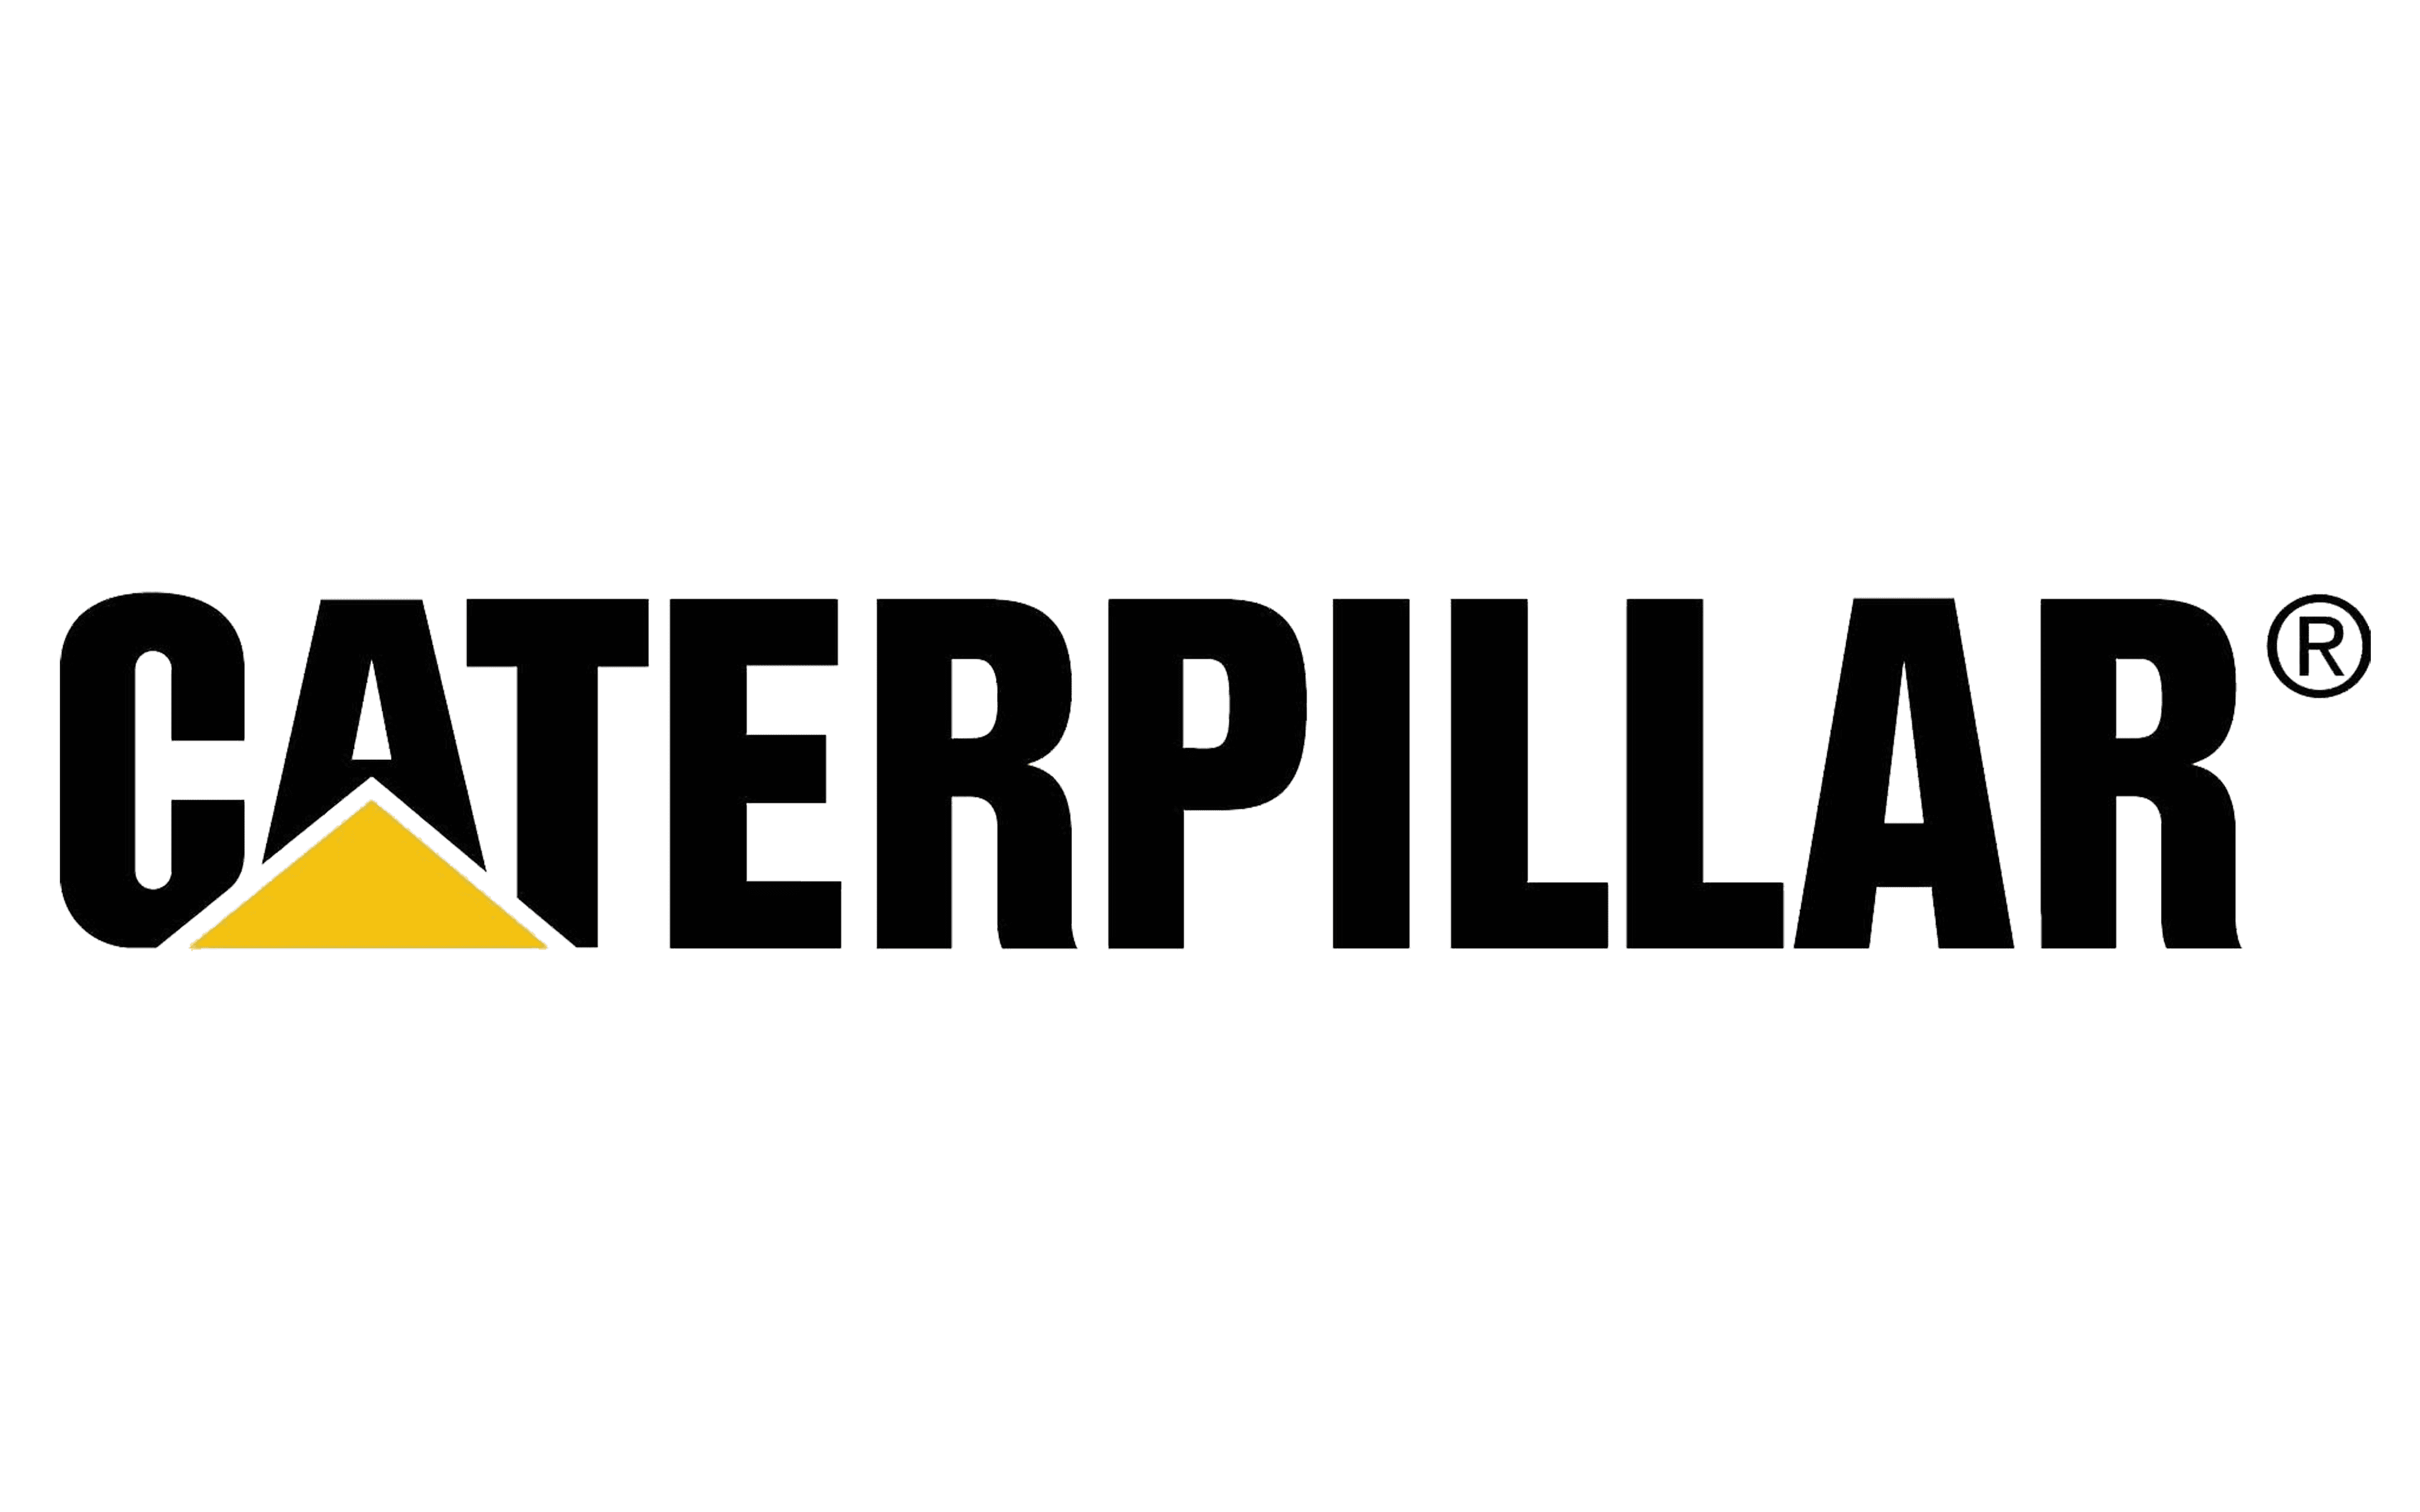 Meaning Caterpillar logo and symbol | history and evolution